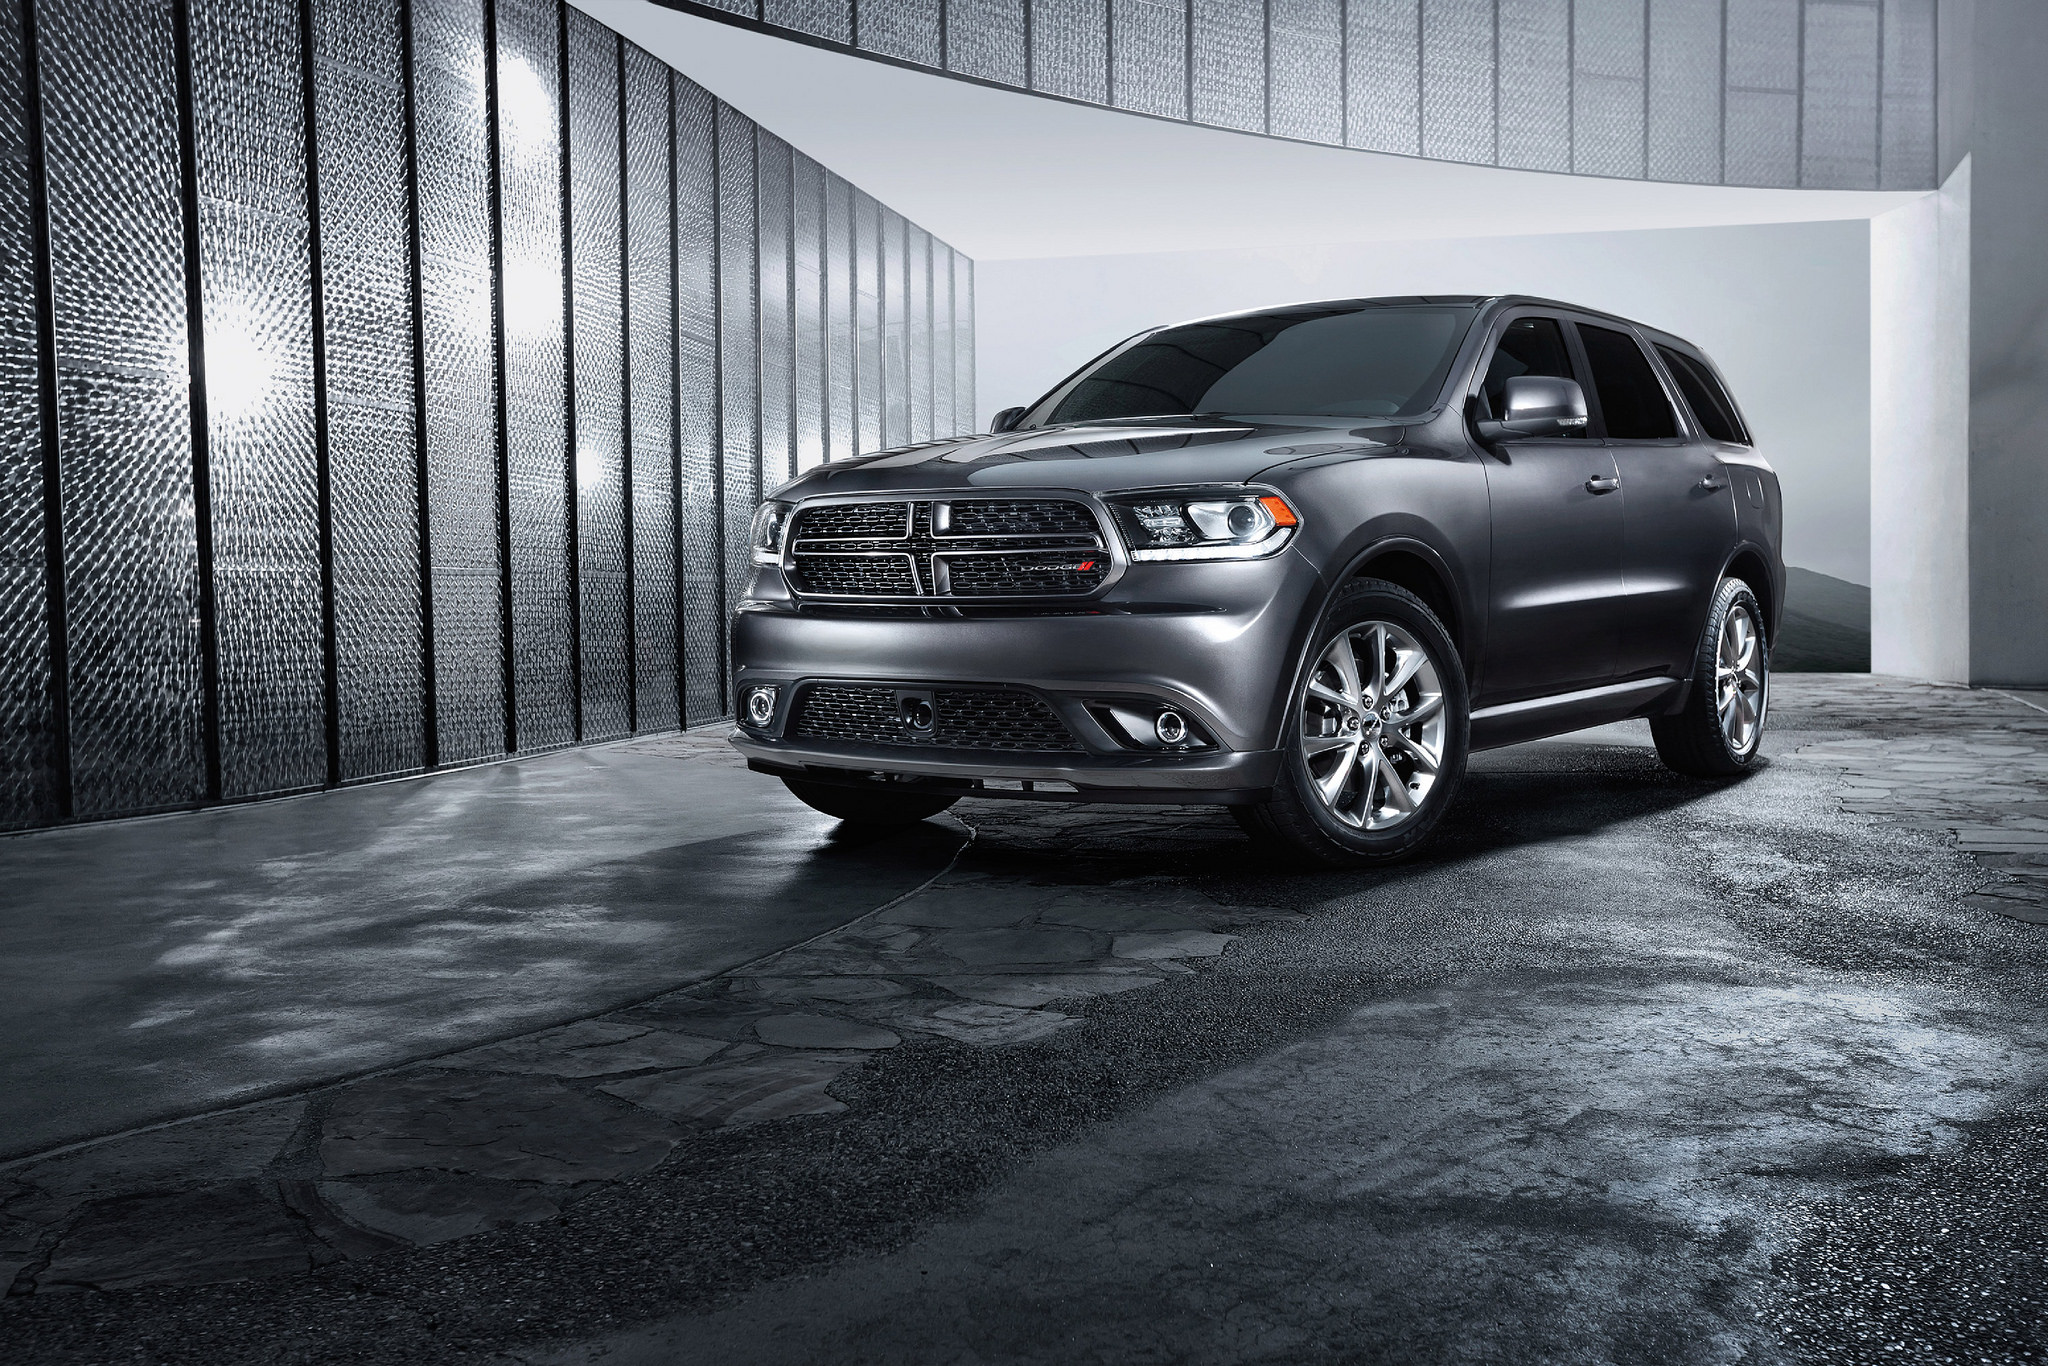 2018 dodge durango takes home best buy award the news wheel. Black Bedroom Furniture Sets. Home Design Ideas